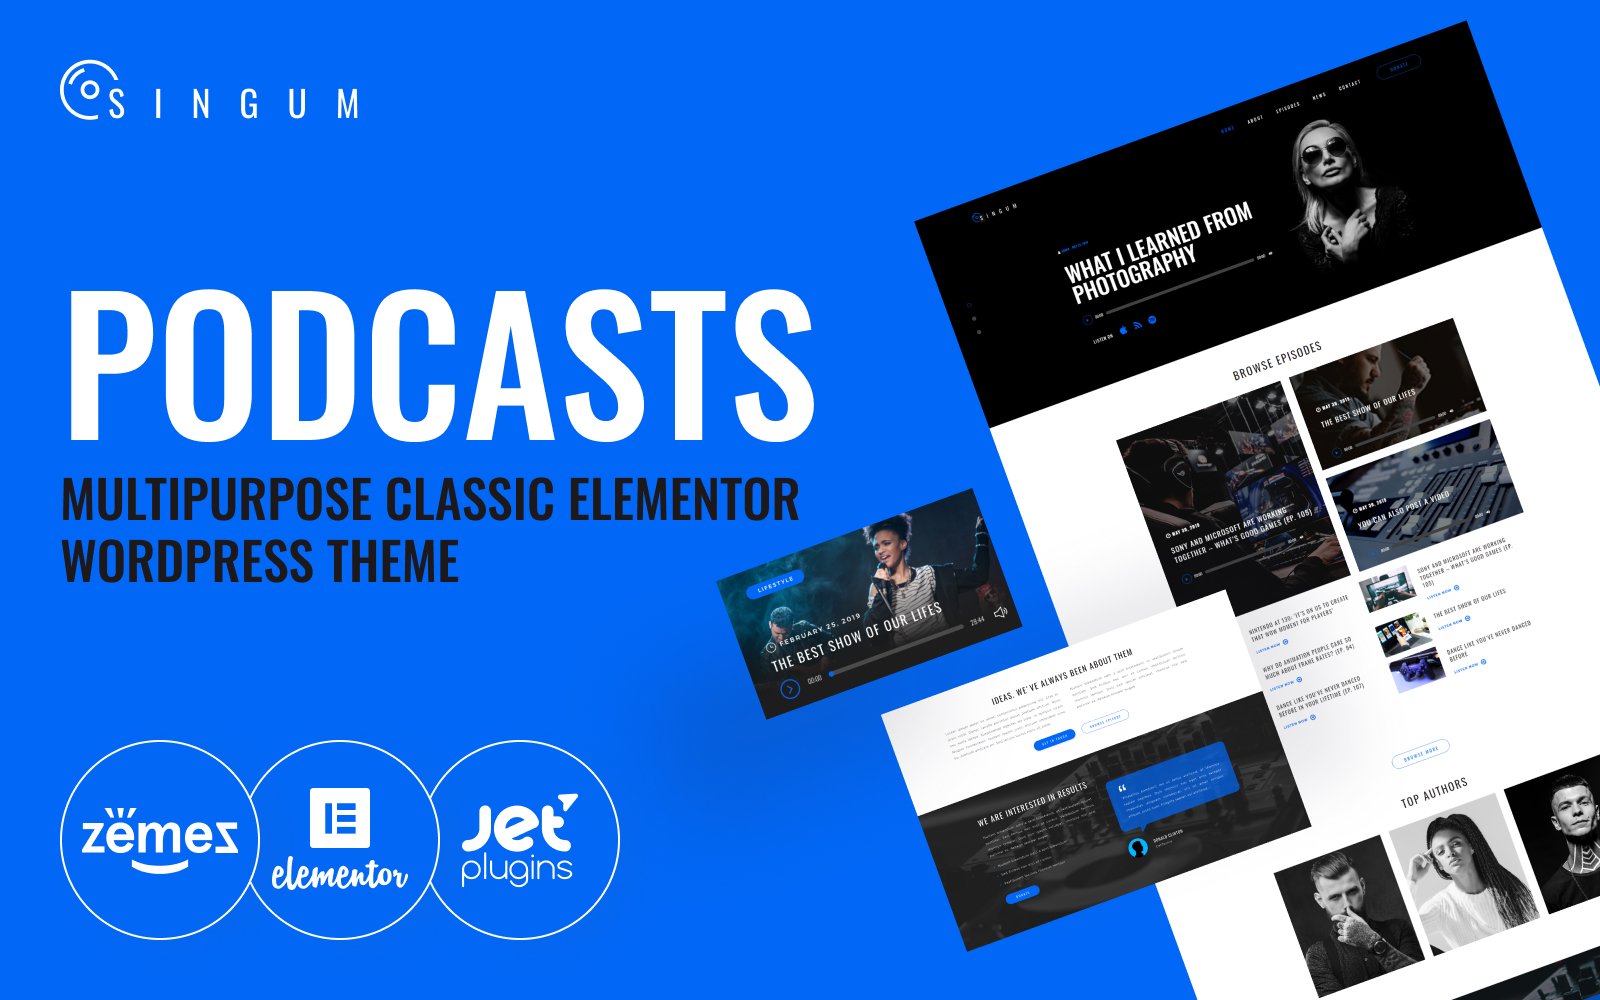 """Singum - Podcaster Multipurpose Classic Elementor"" thème WordPress adaptatif #82015"